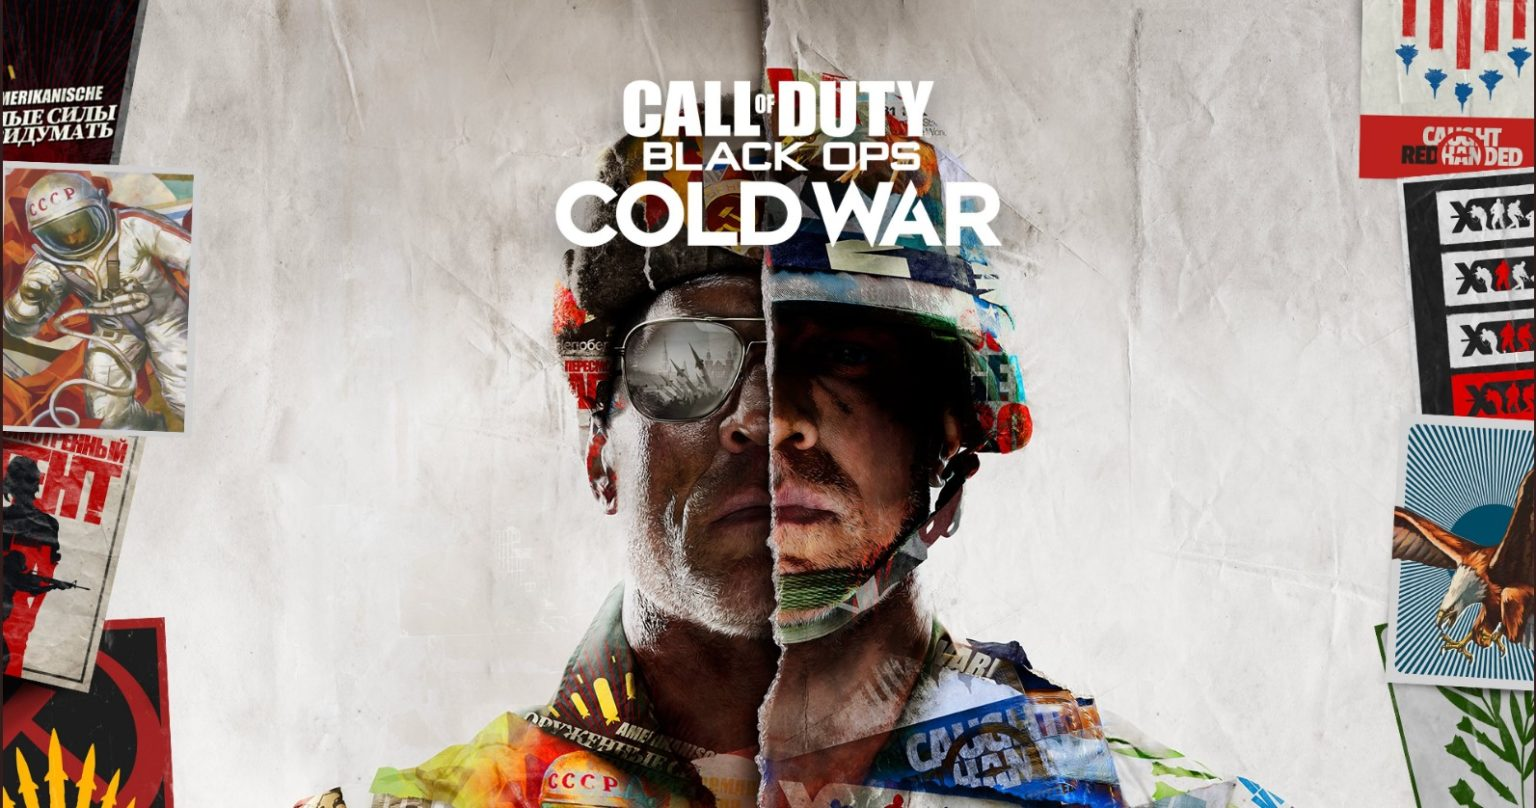 Cómo hacer un movimiento final en Call of Duty: Black Ops Cold War